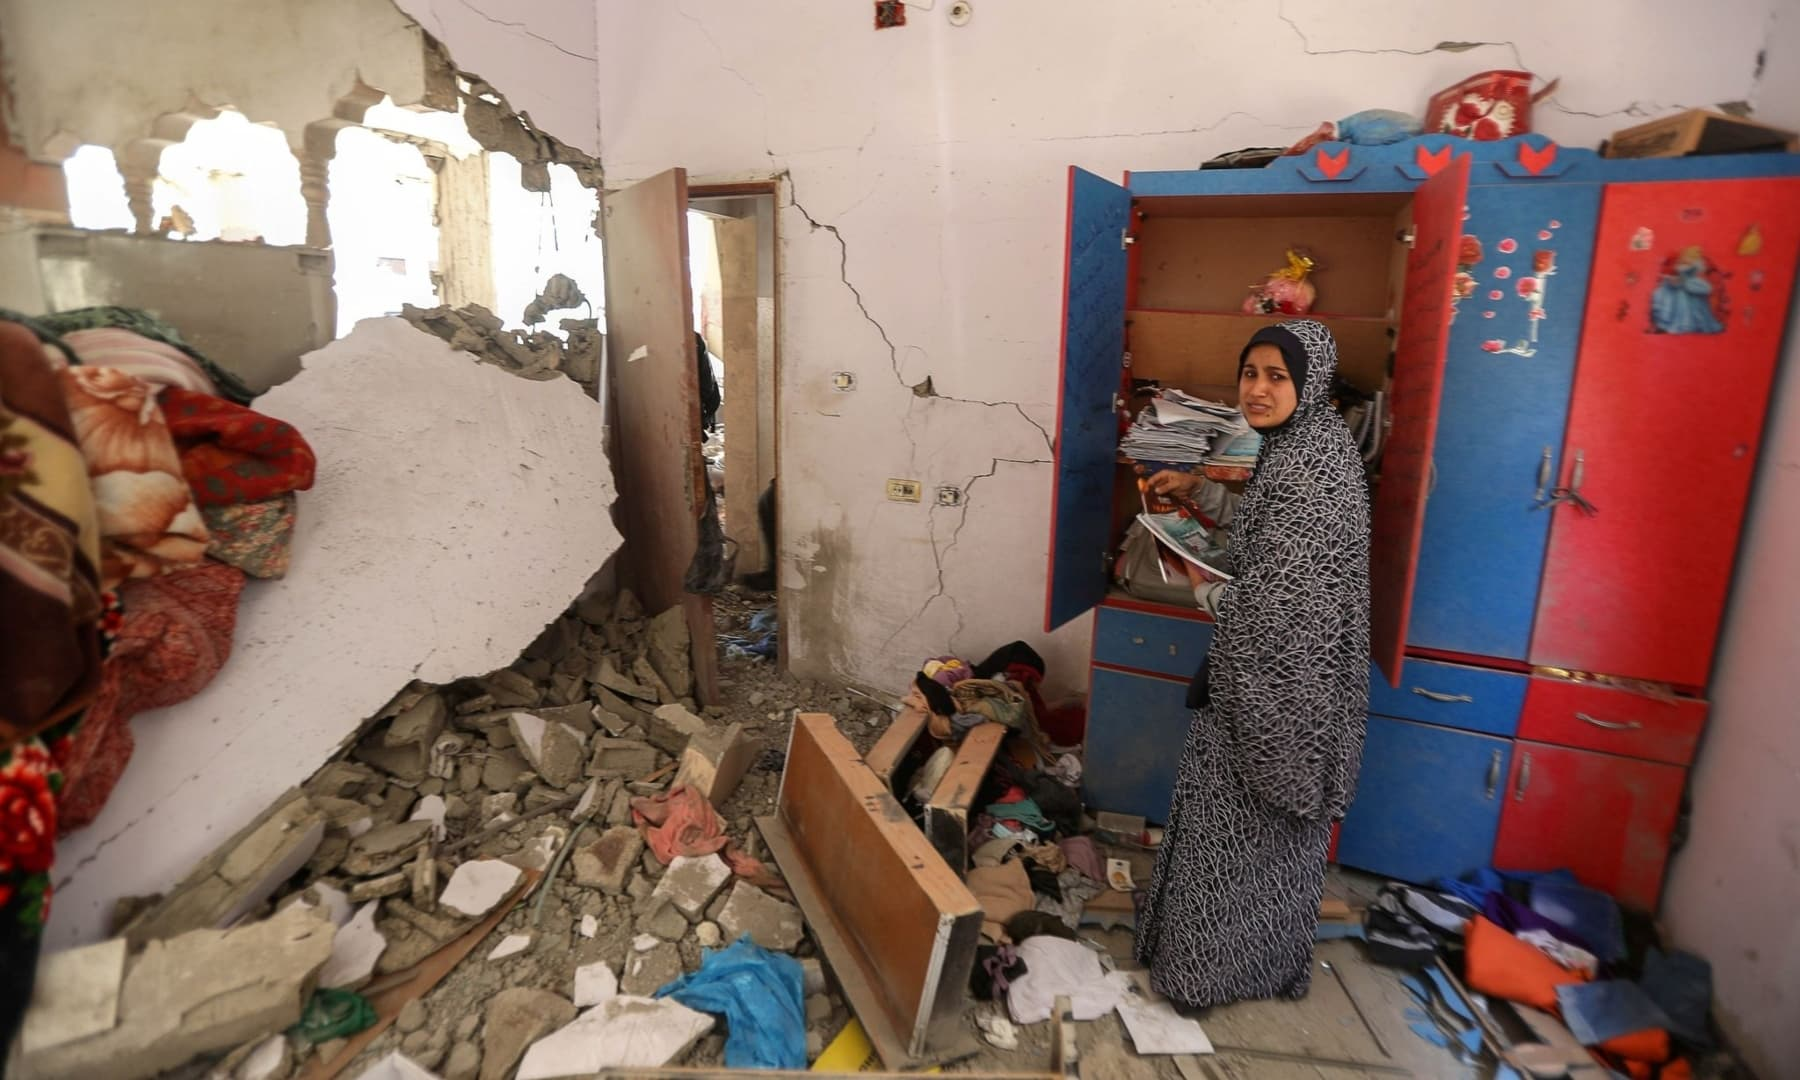 A Palestinian woman reacts as she collects her belongings inside her heavily damaged house in the aftermath of Israeli air and artillery strikes as cross-border attacks by the Israeli military continue, in the northern Gaza Strip, May 14, 2021. — Reuters